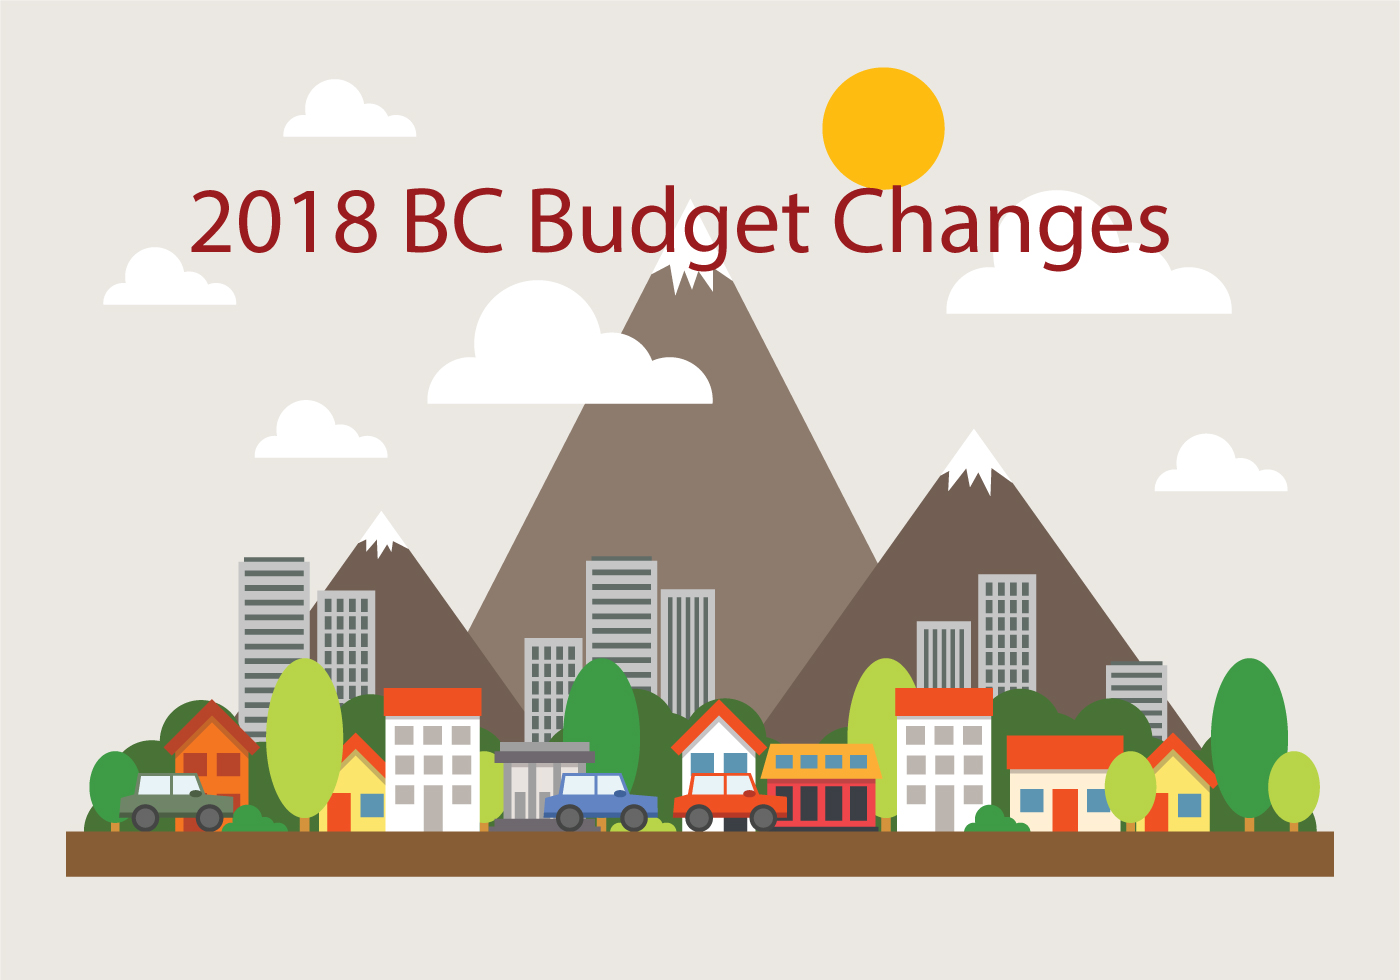 2018 BC Budget Changes Explained